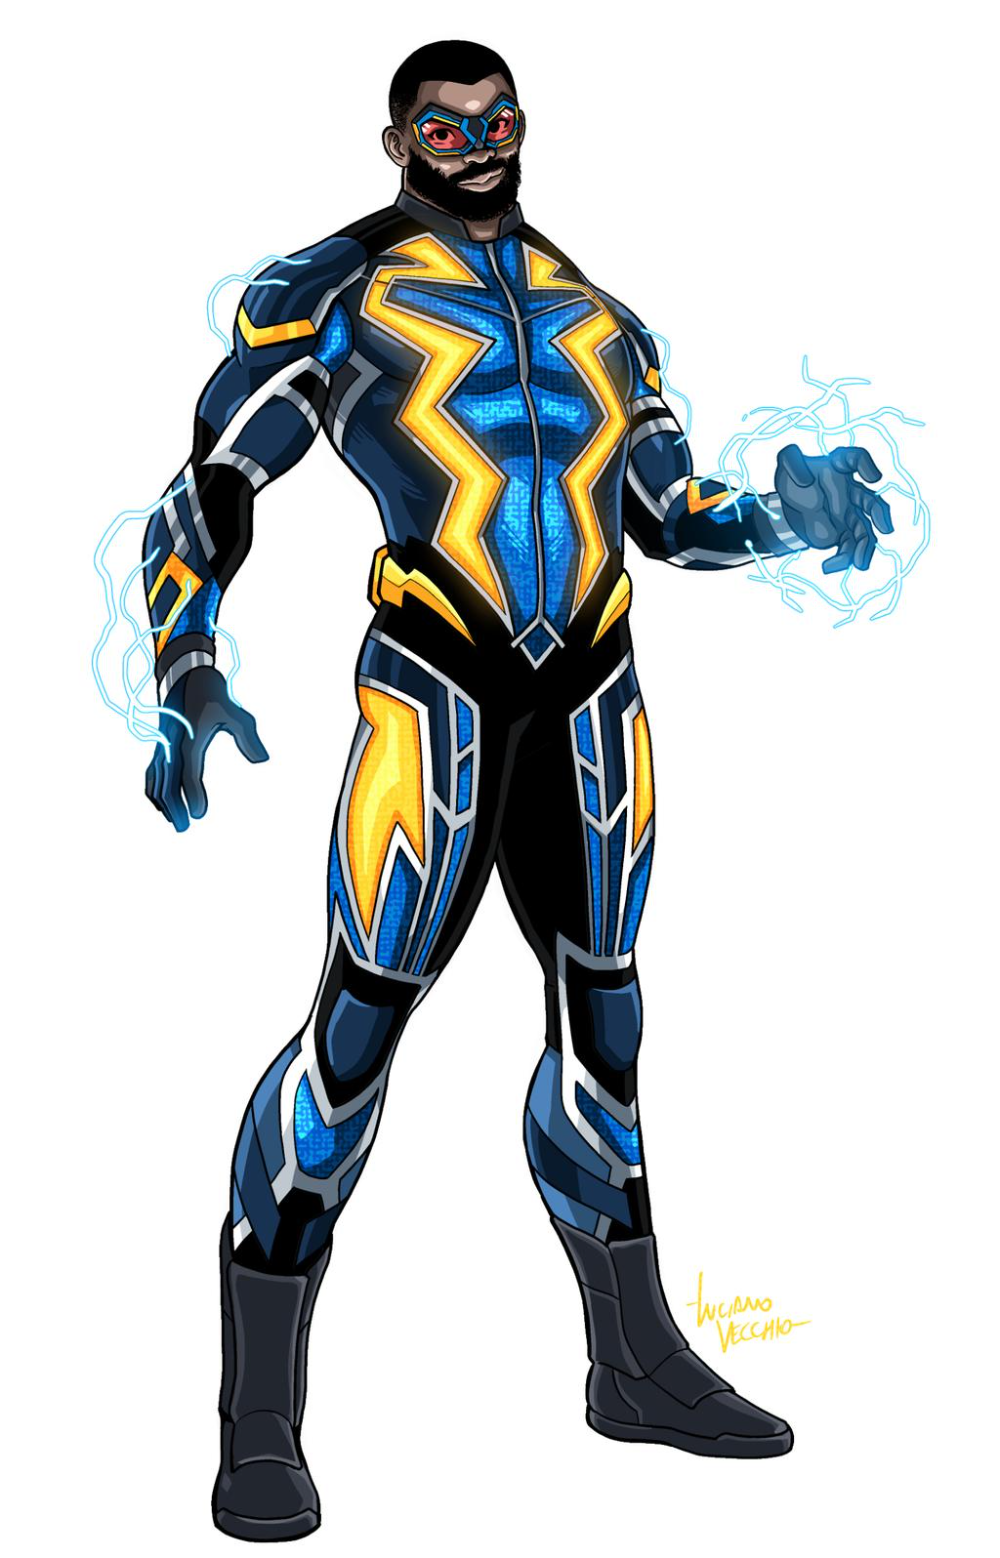 Black Lightning By Lucianovecchio On Deviantart Black Lightning Black Comics Superhero Design